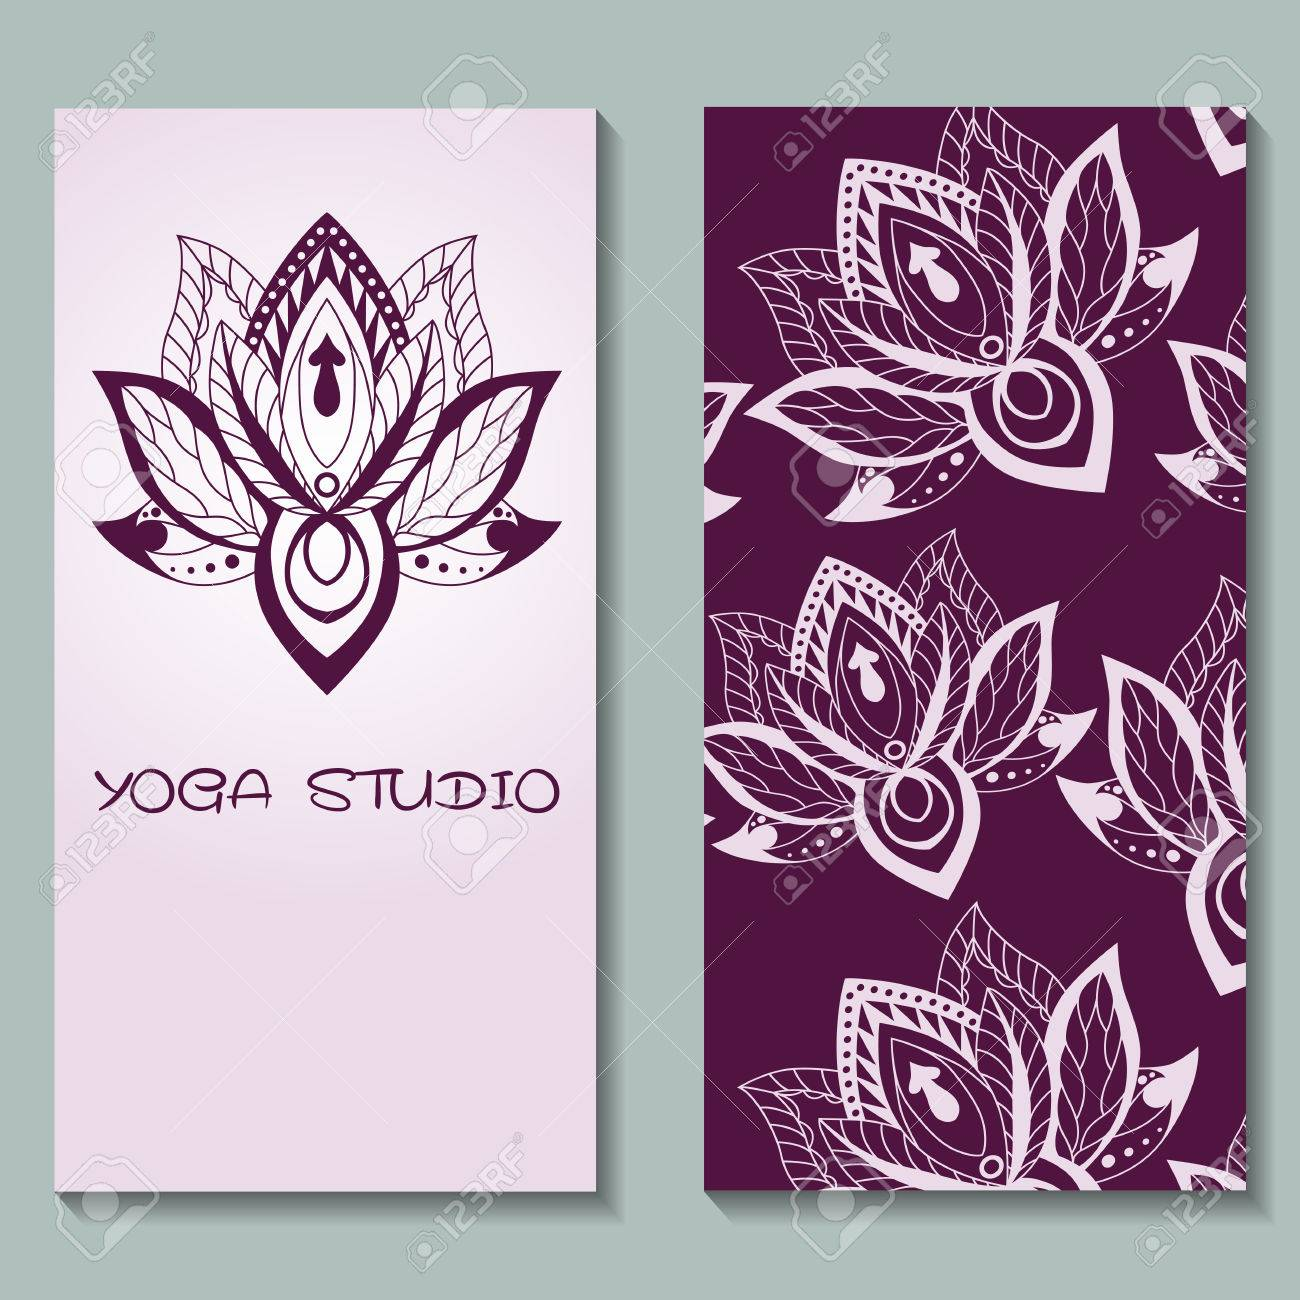 Cards Template For Yoga Studio With Lotuses. Yoga Vertical Vector ...